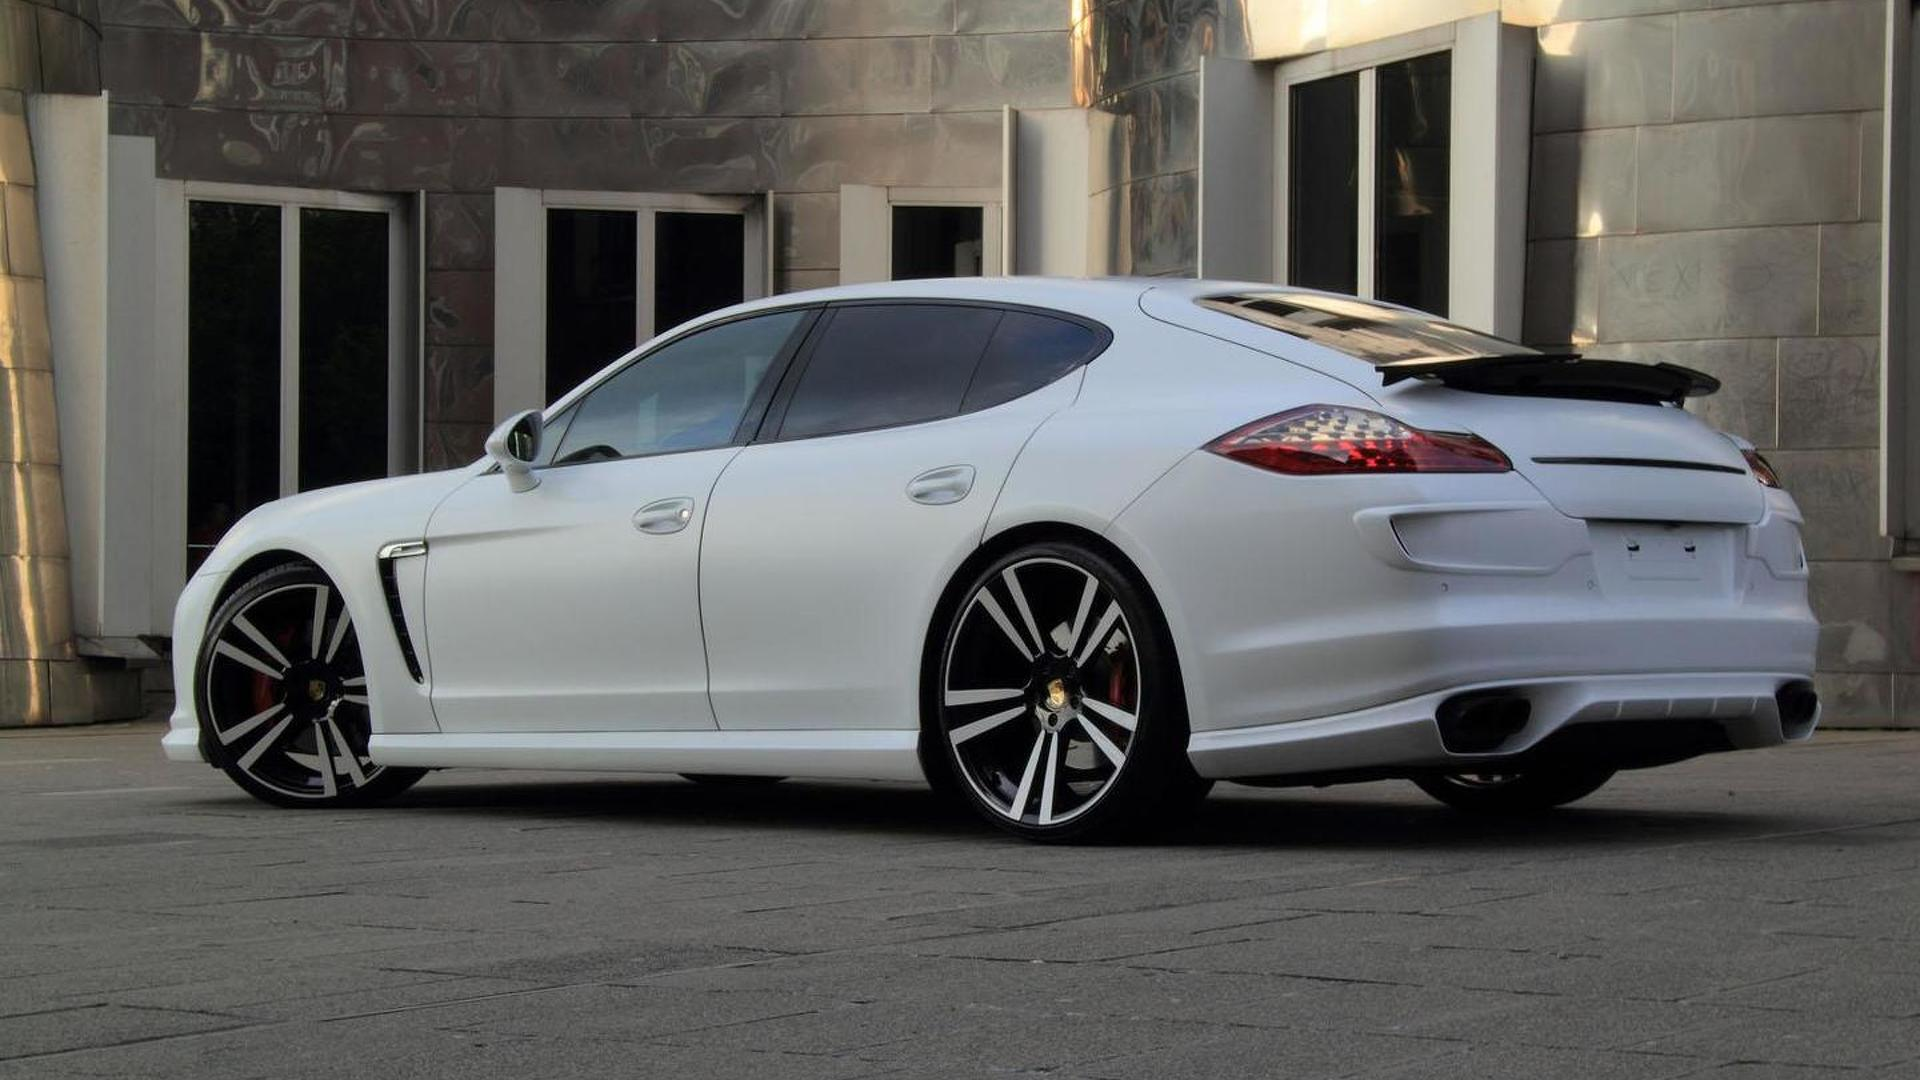 porsche panamera white storm edition by anderson germany product 2012 08 03 160920